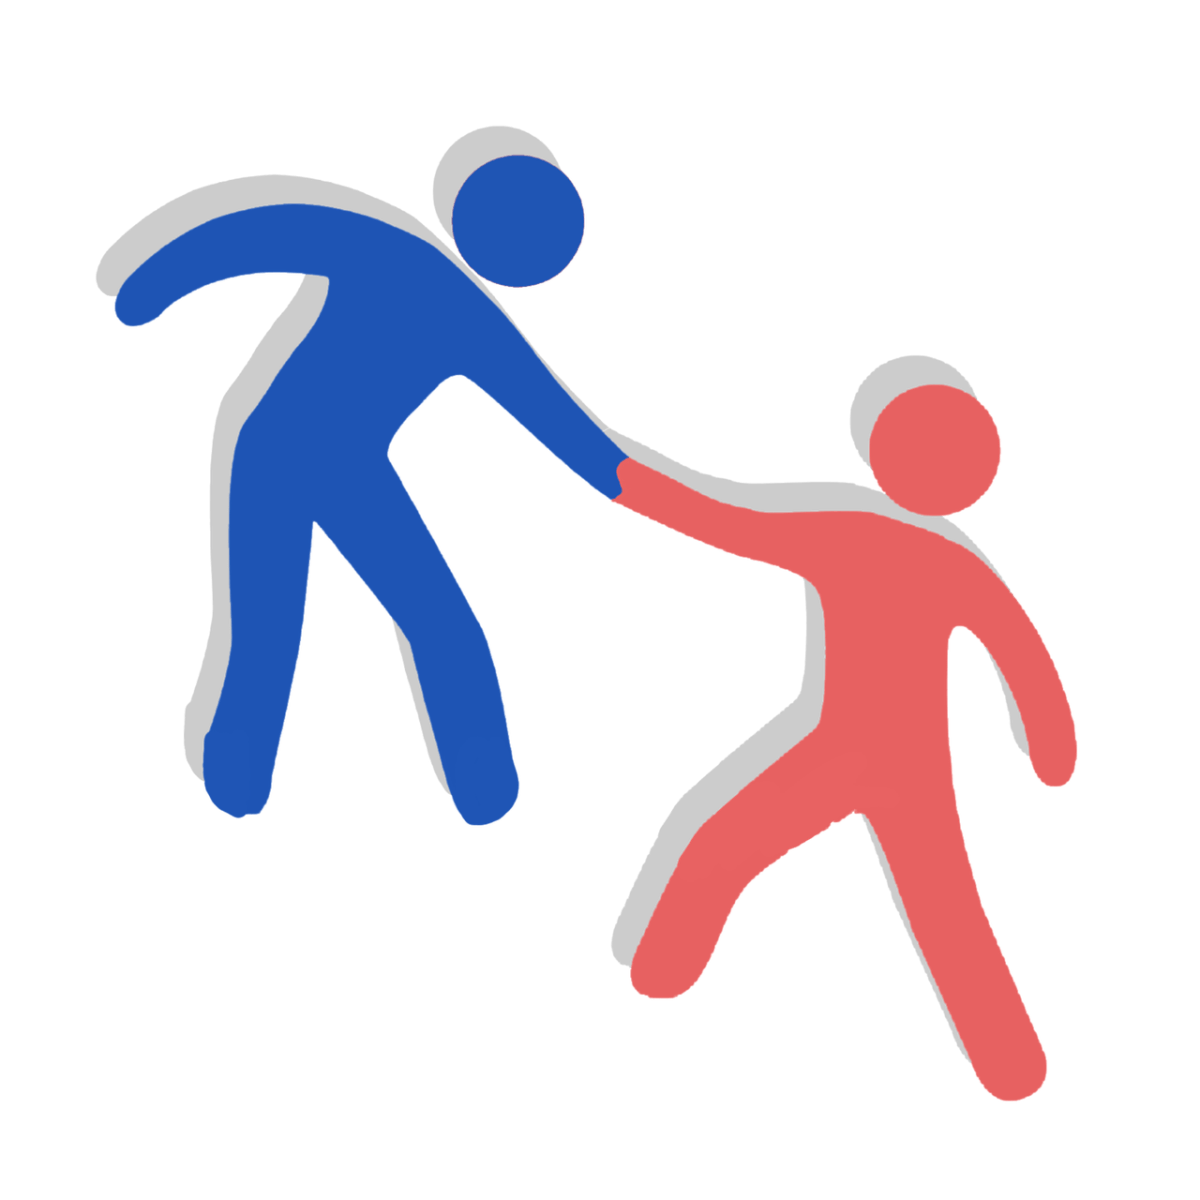 Two human icons - one blue and the other red. The red icon is helping the blue icon, holding hands.